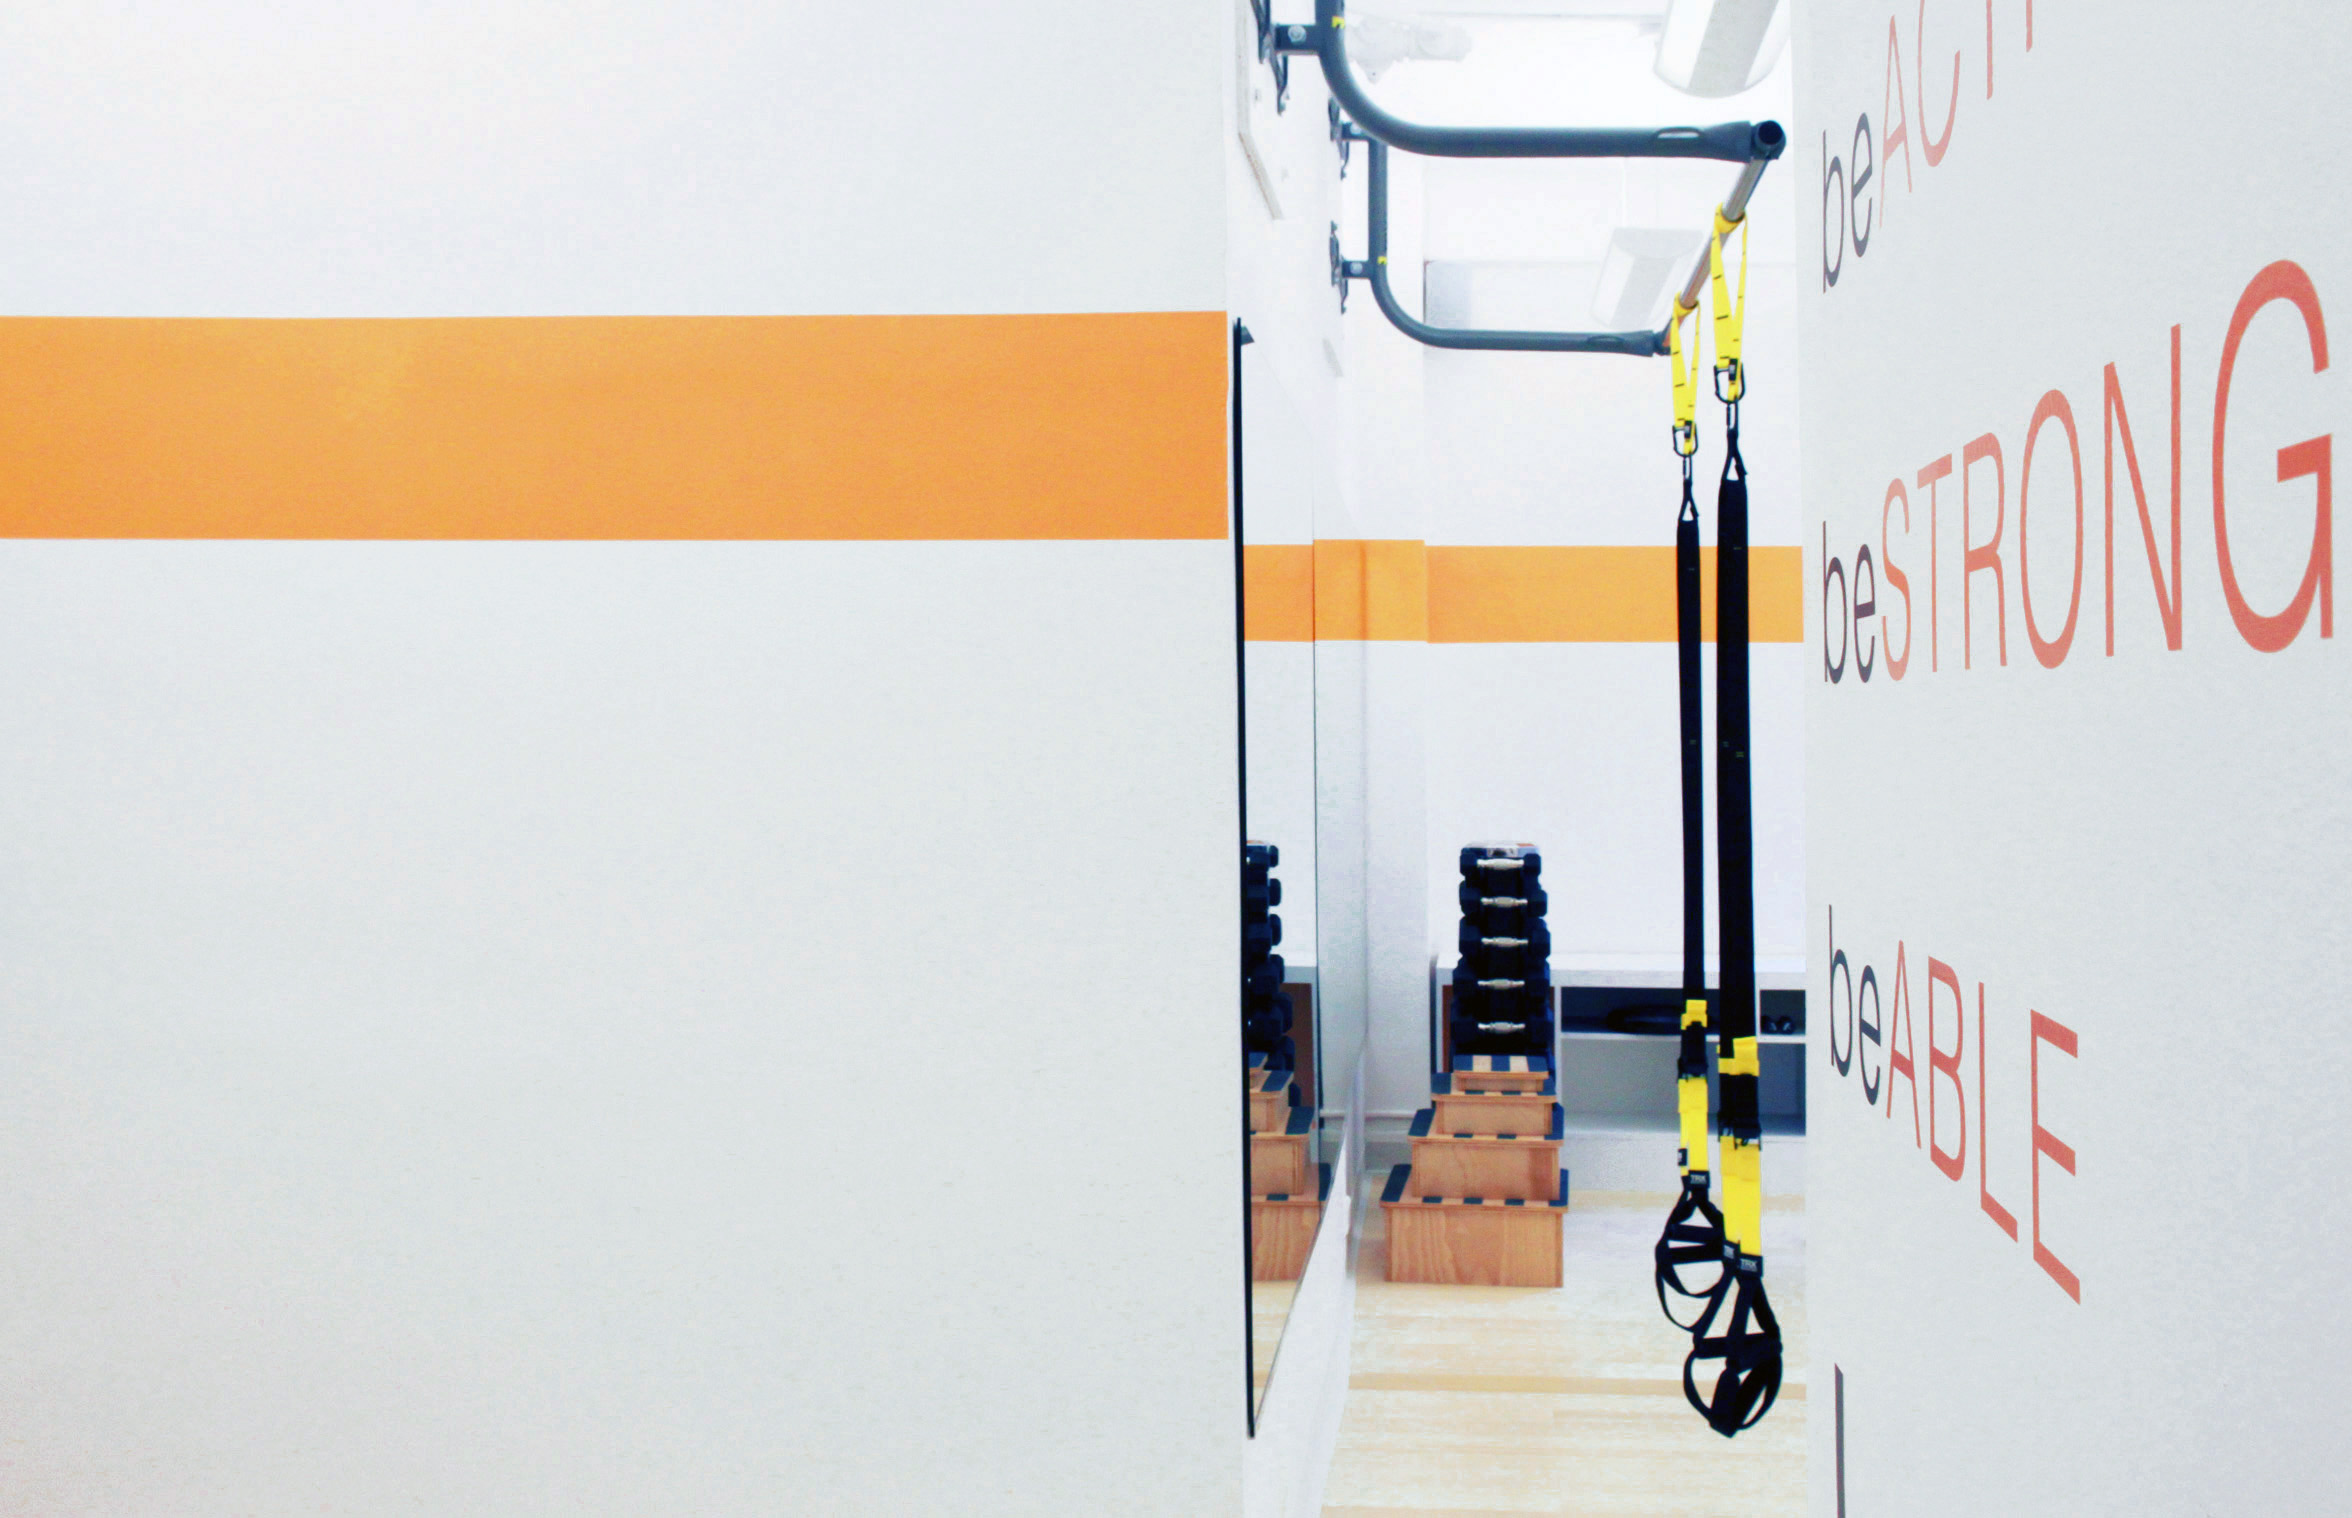 Commercial office renovation for befit, New York City